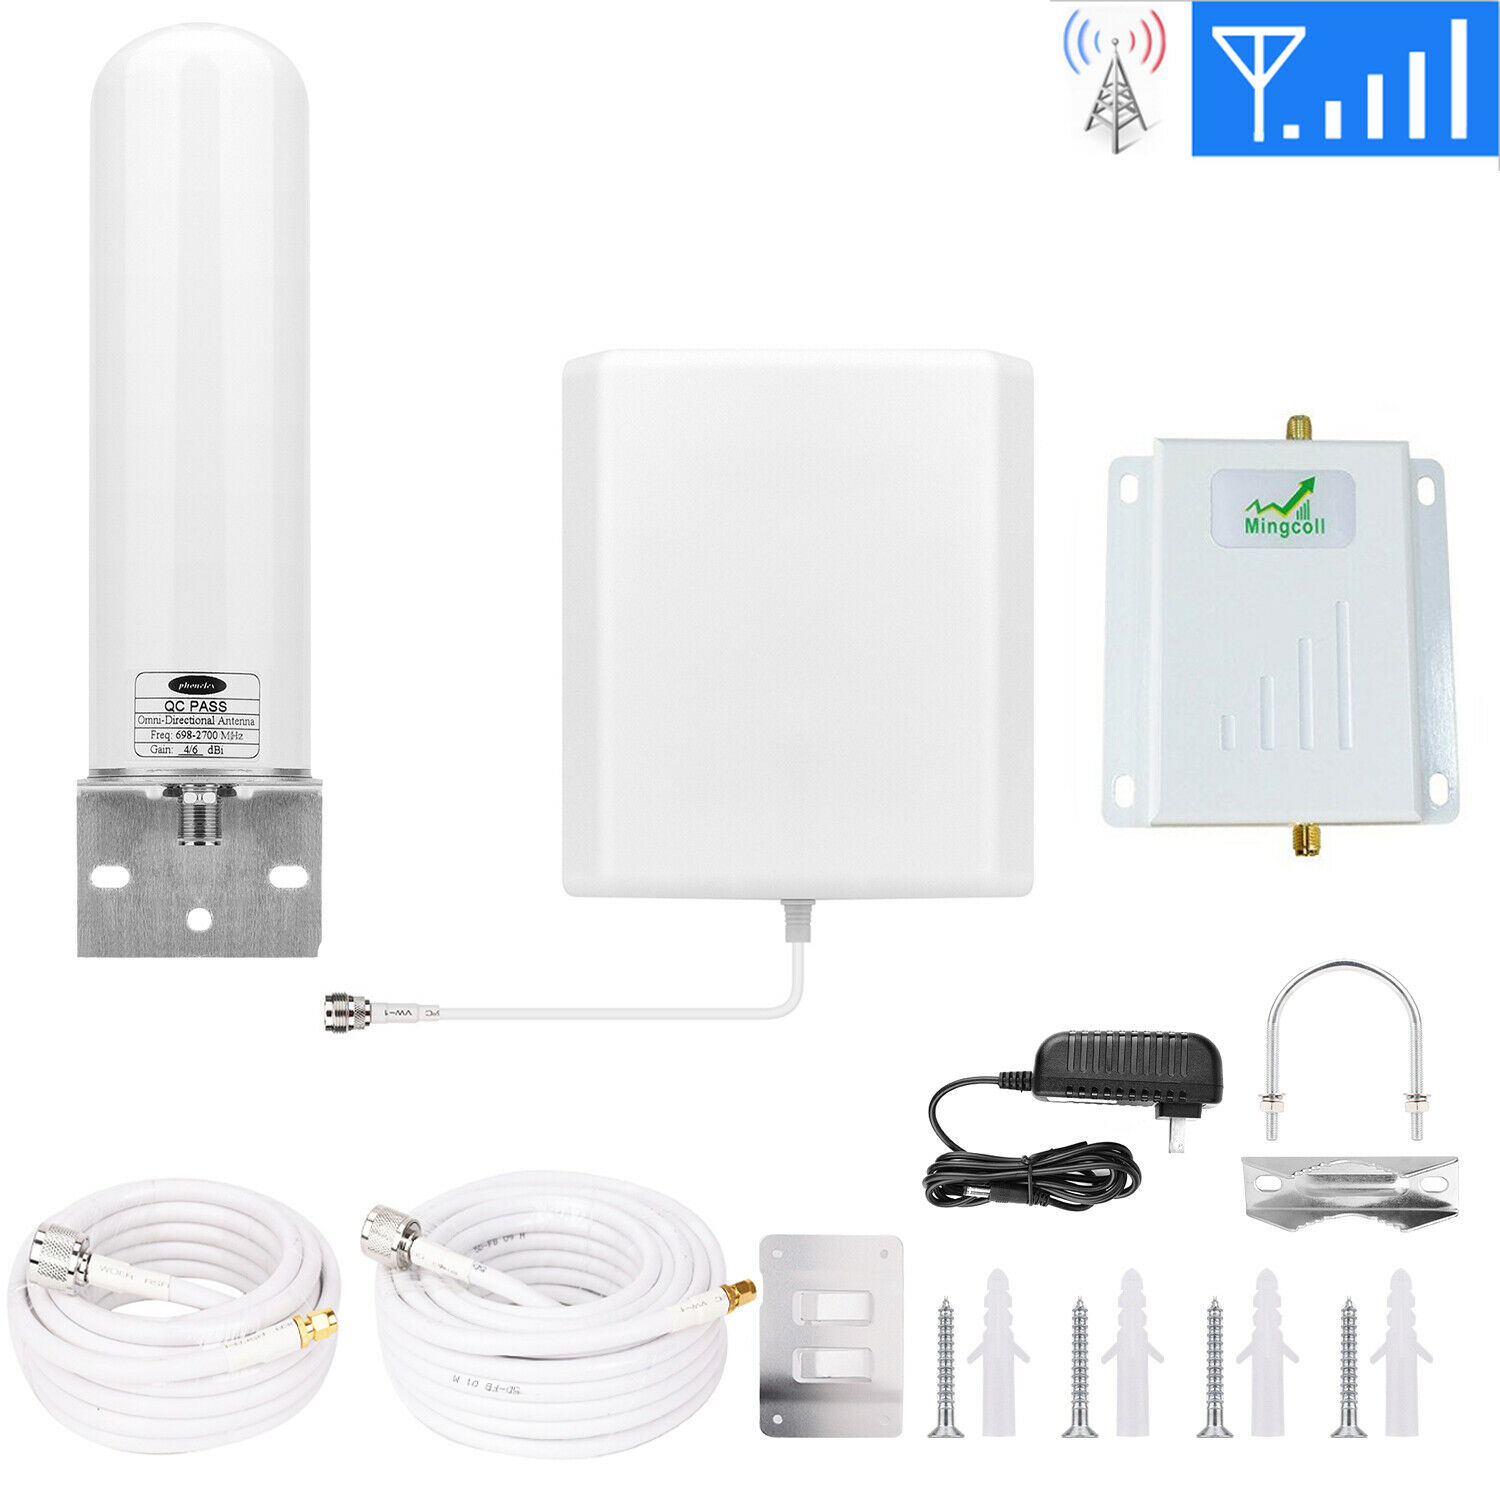 AT&T Cricket Signal Booster 4G LTE T-Mobile Cell Phone Signa